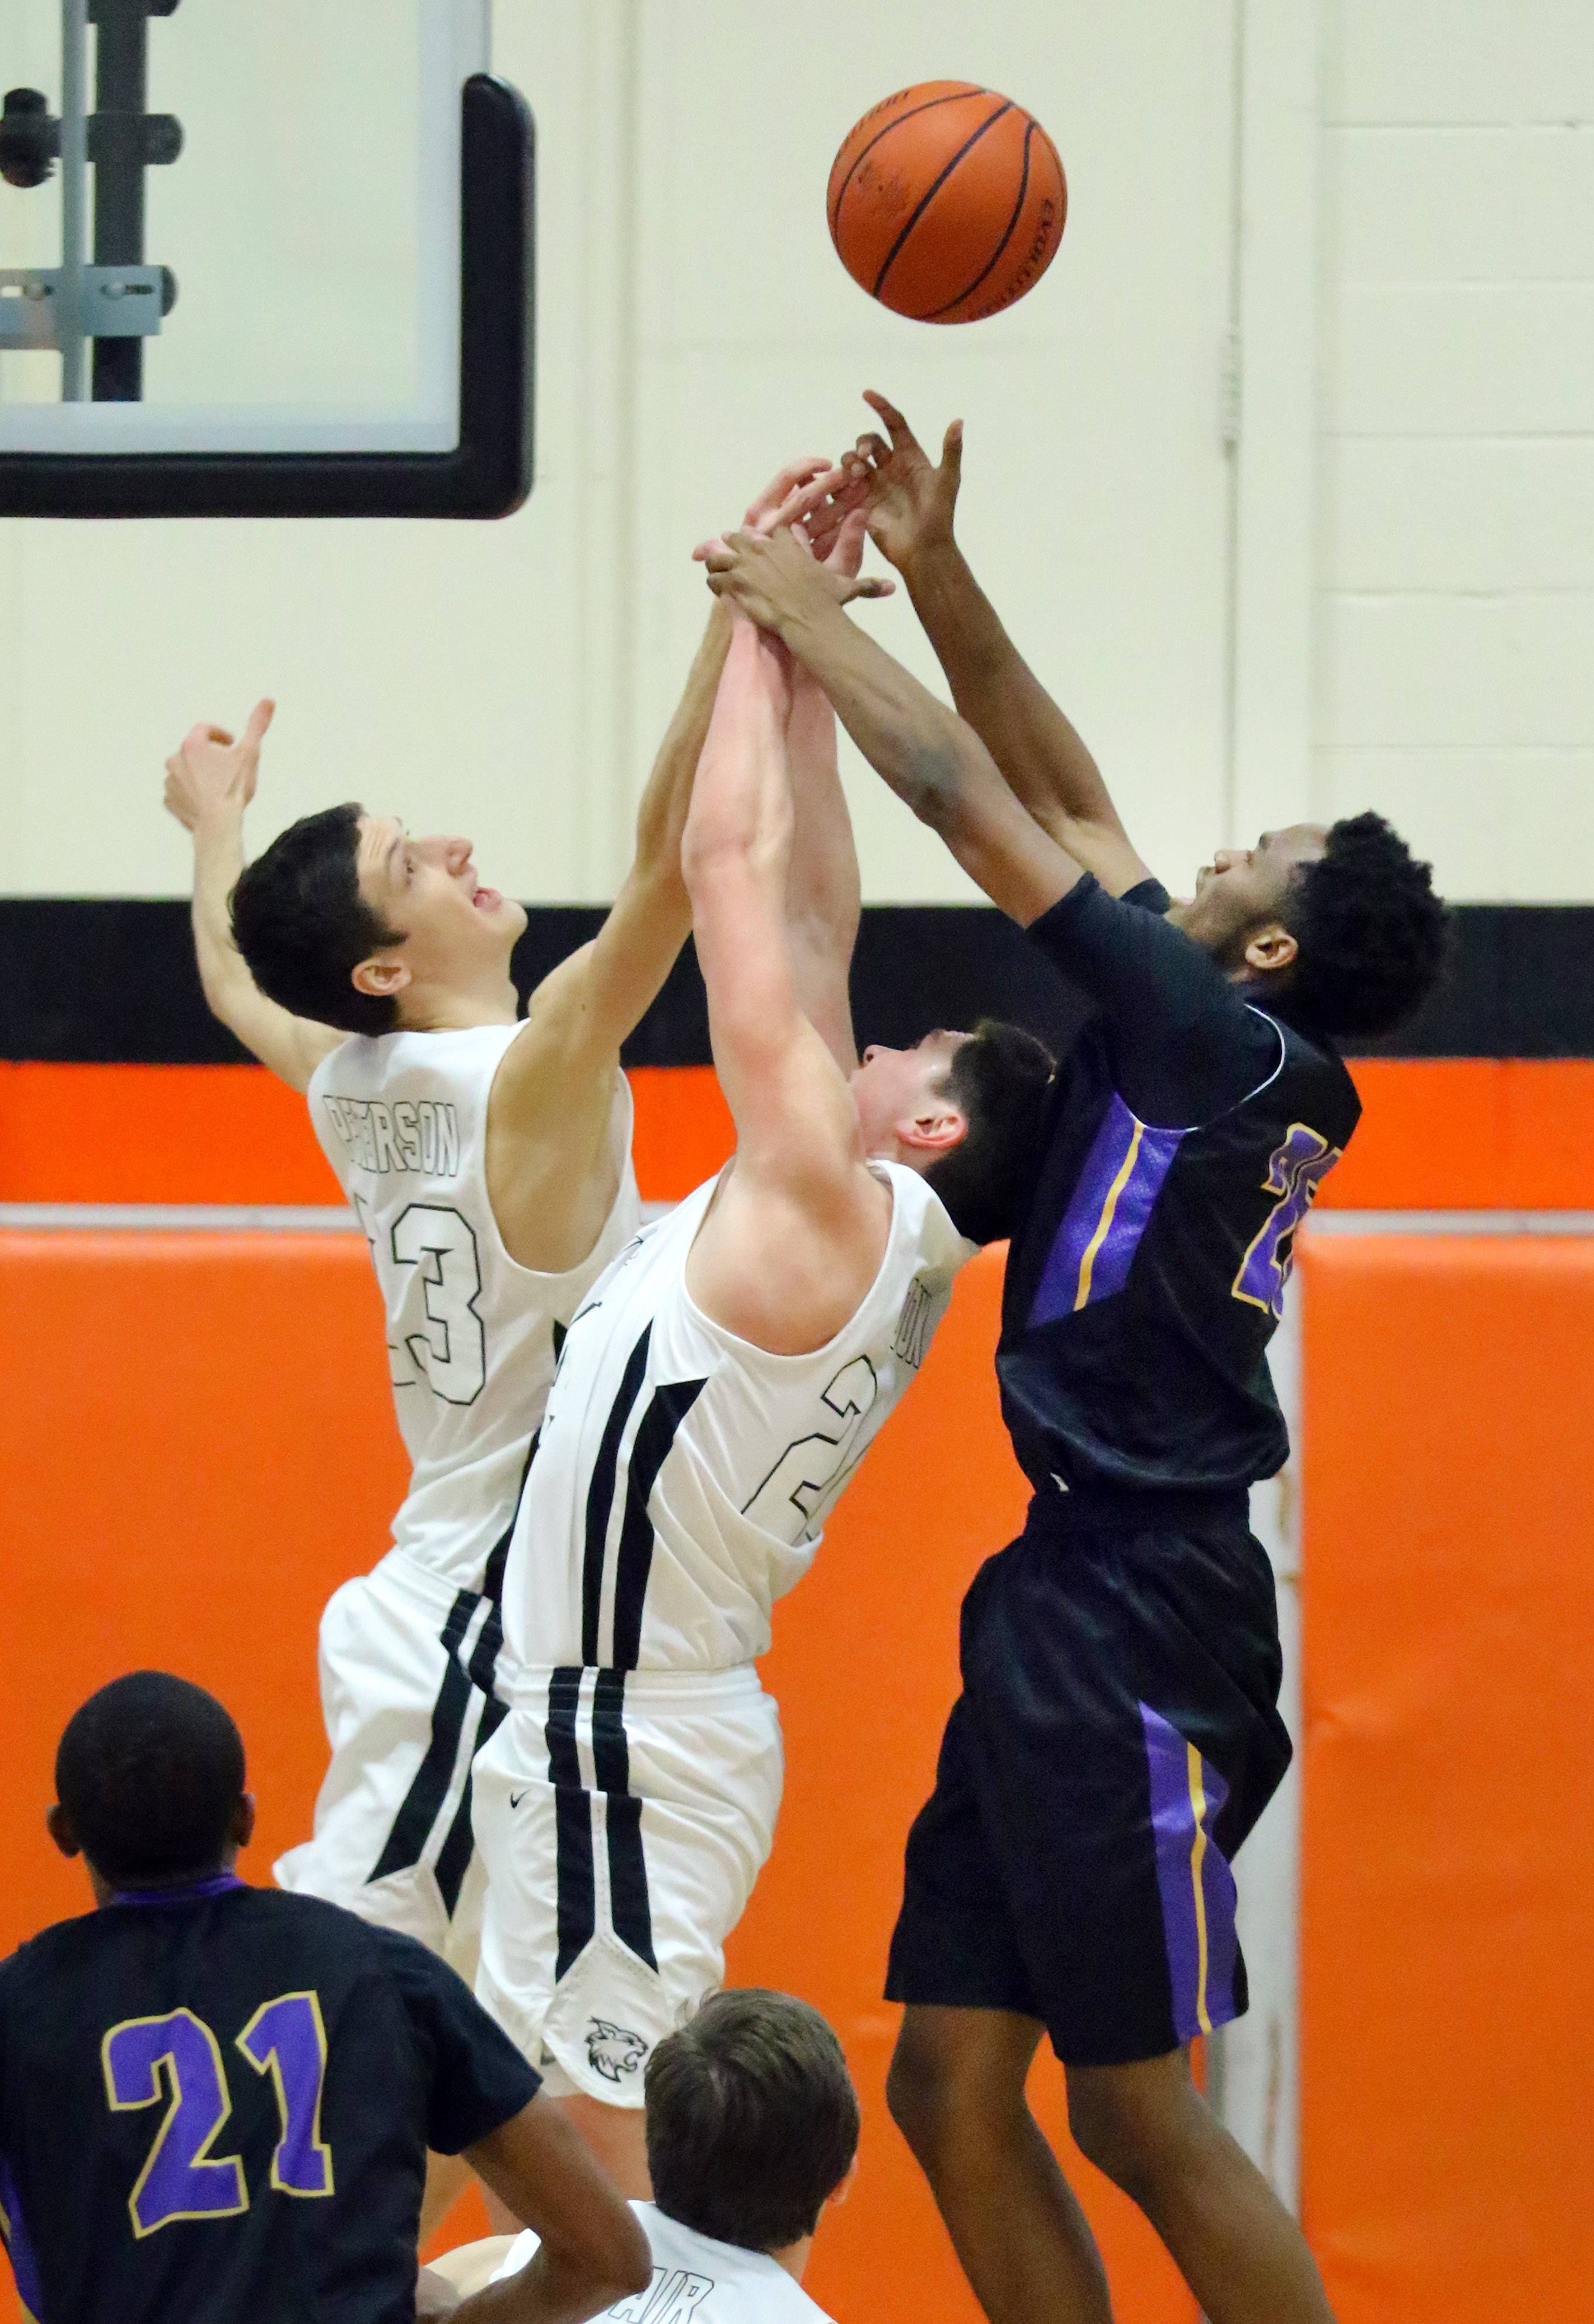 Libertyville's Drew Peterson, left, and Brendan Cook battle for a rebound with Waukegan's Bryant Brown on Friday night in Libertyville.